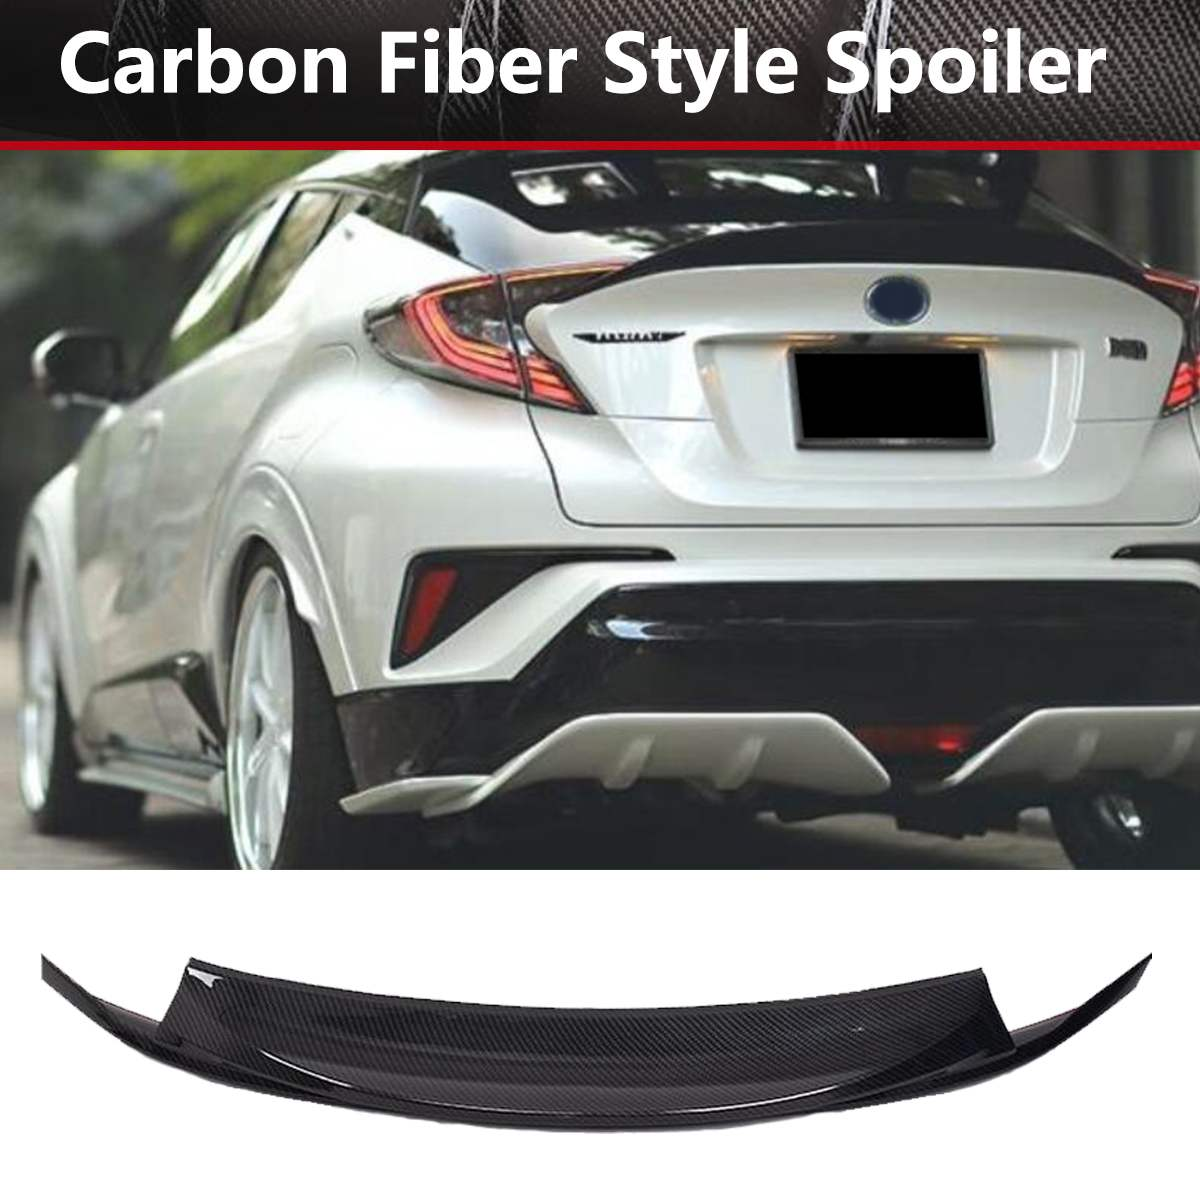 ABS Plastic Carbon Fiber Look Rear Trunk  Wing Tail Spoiler Trim For Toyota C-HR CHR 2016 2017 2018ABS Plastic Carbon Fiber Look Rear Trunk  Wing Tail Spoiler Trim For Toyota C-HR CHR 2016 2017 2018